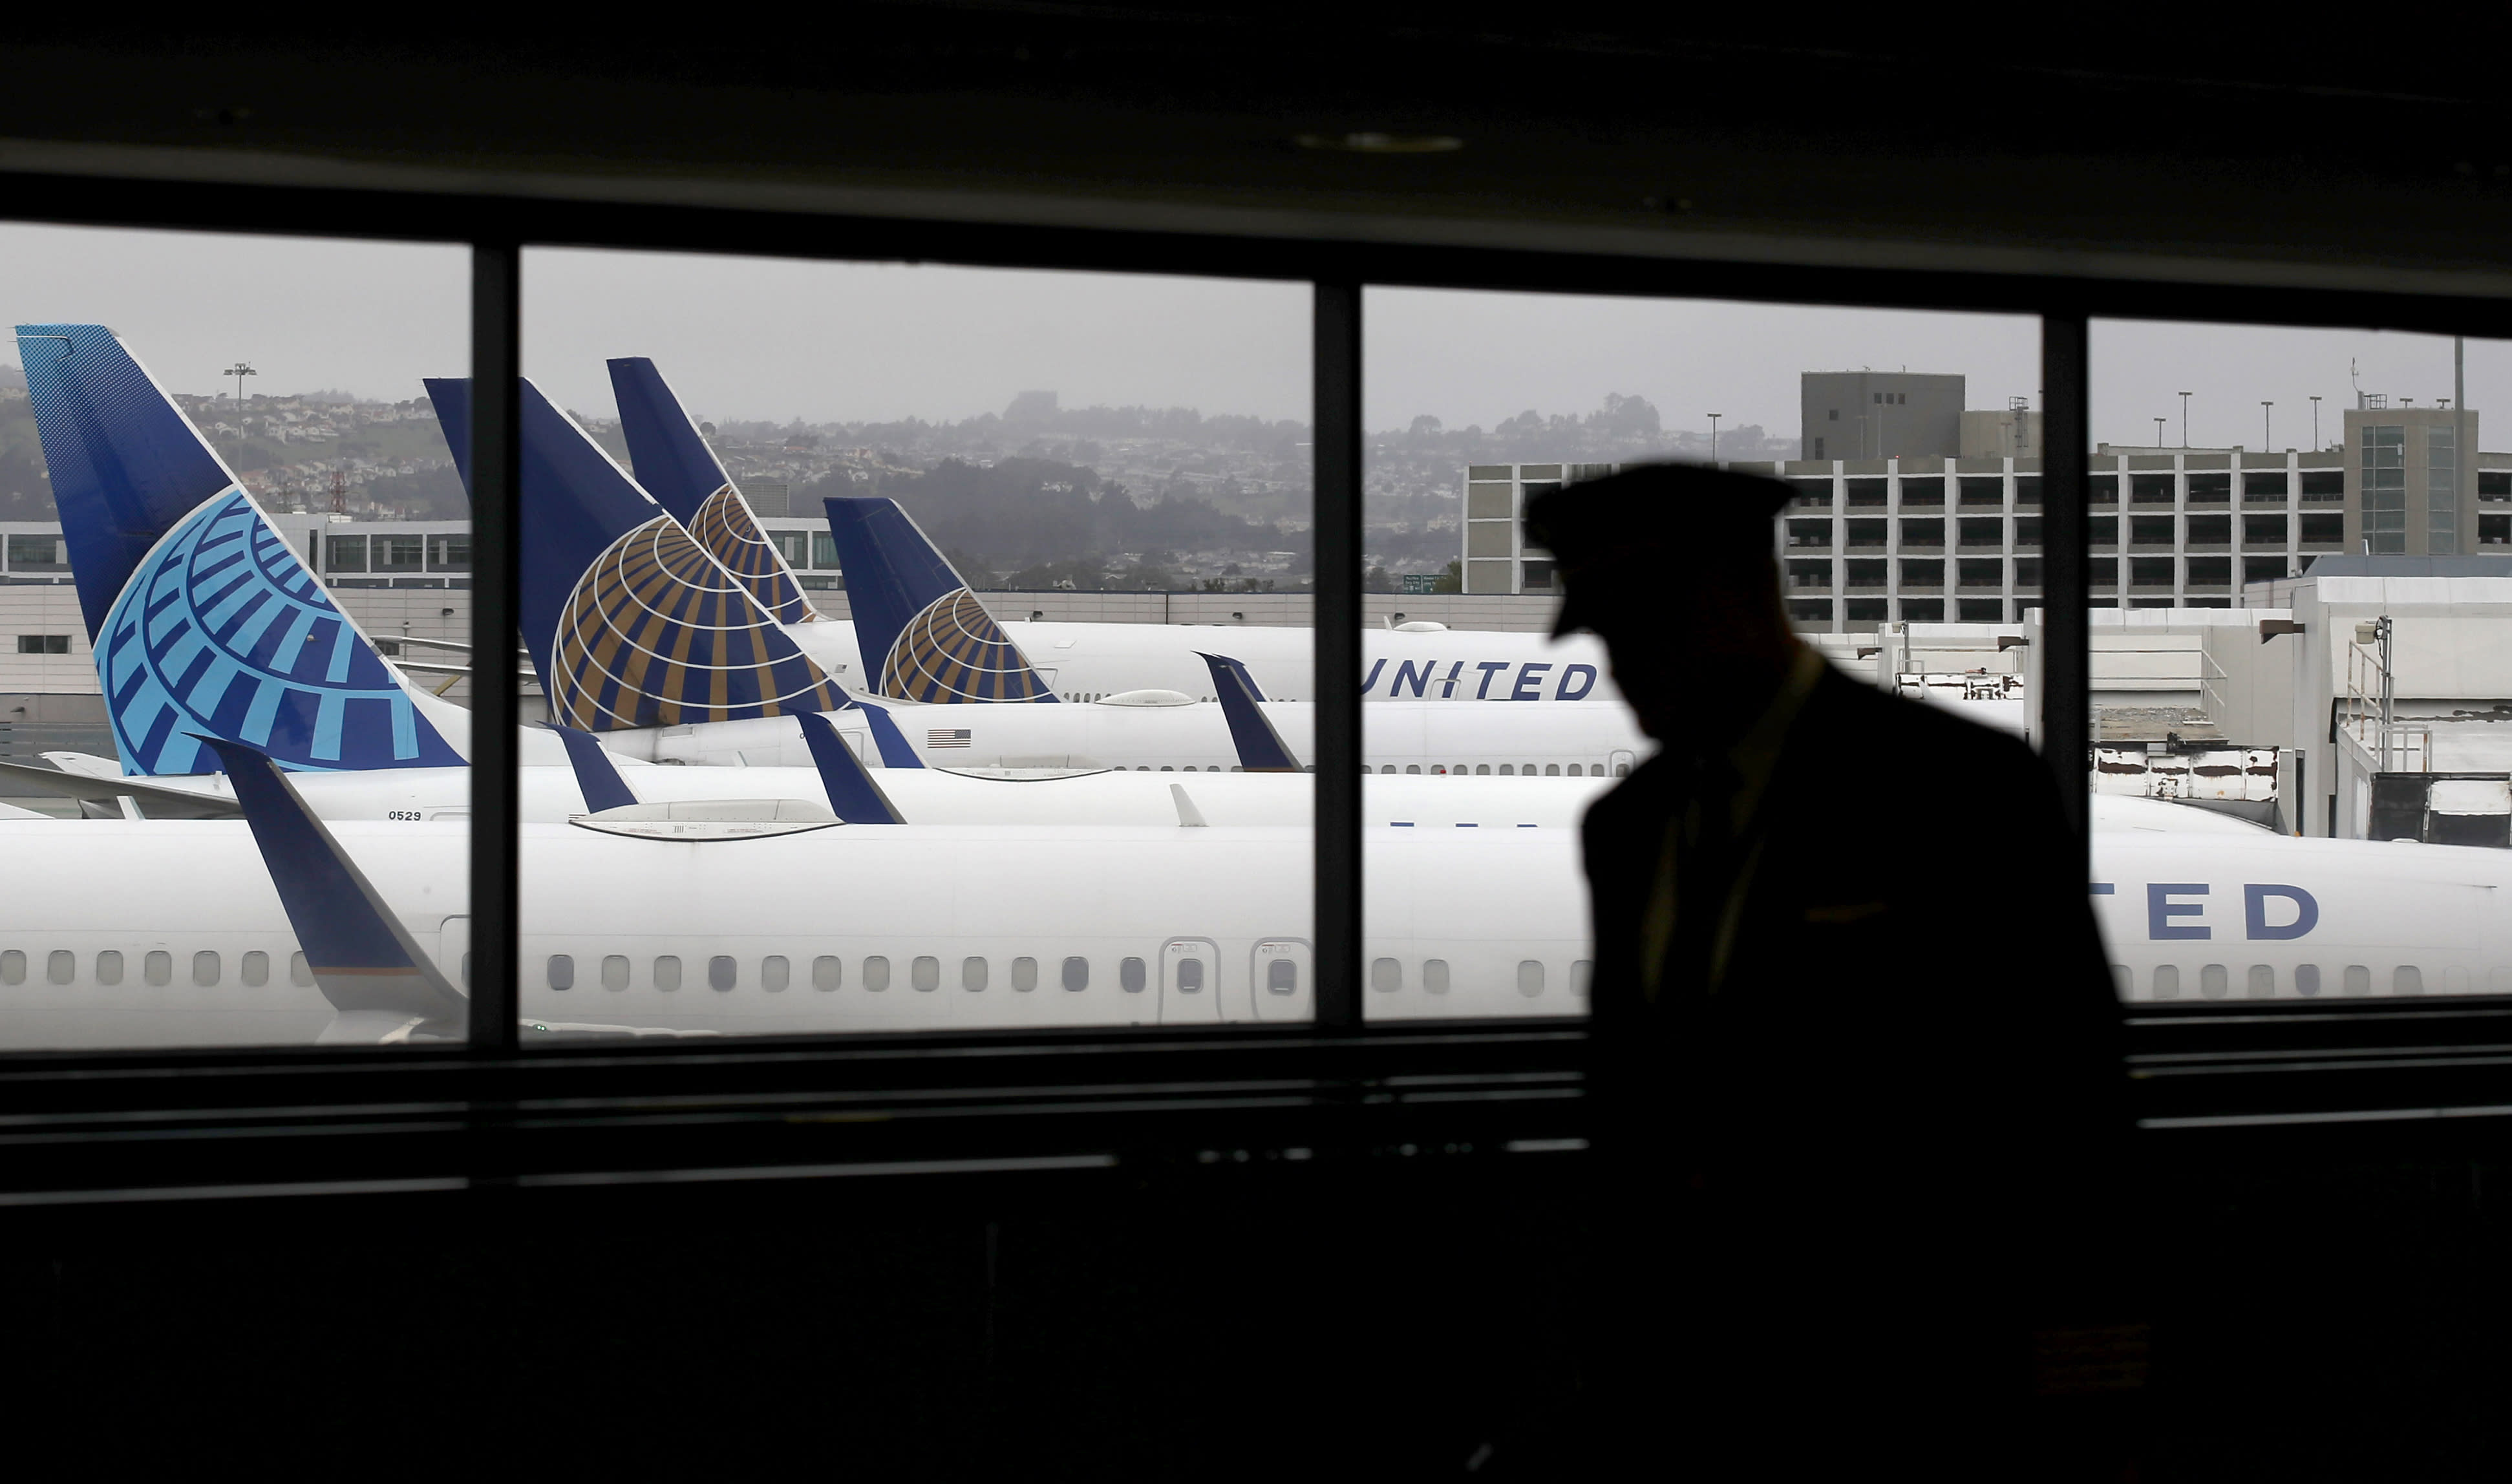 United, pilots union reach agreement to avoid close to 3,000 furloughs